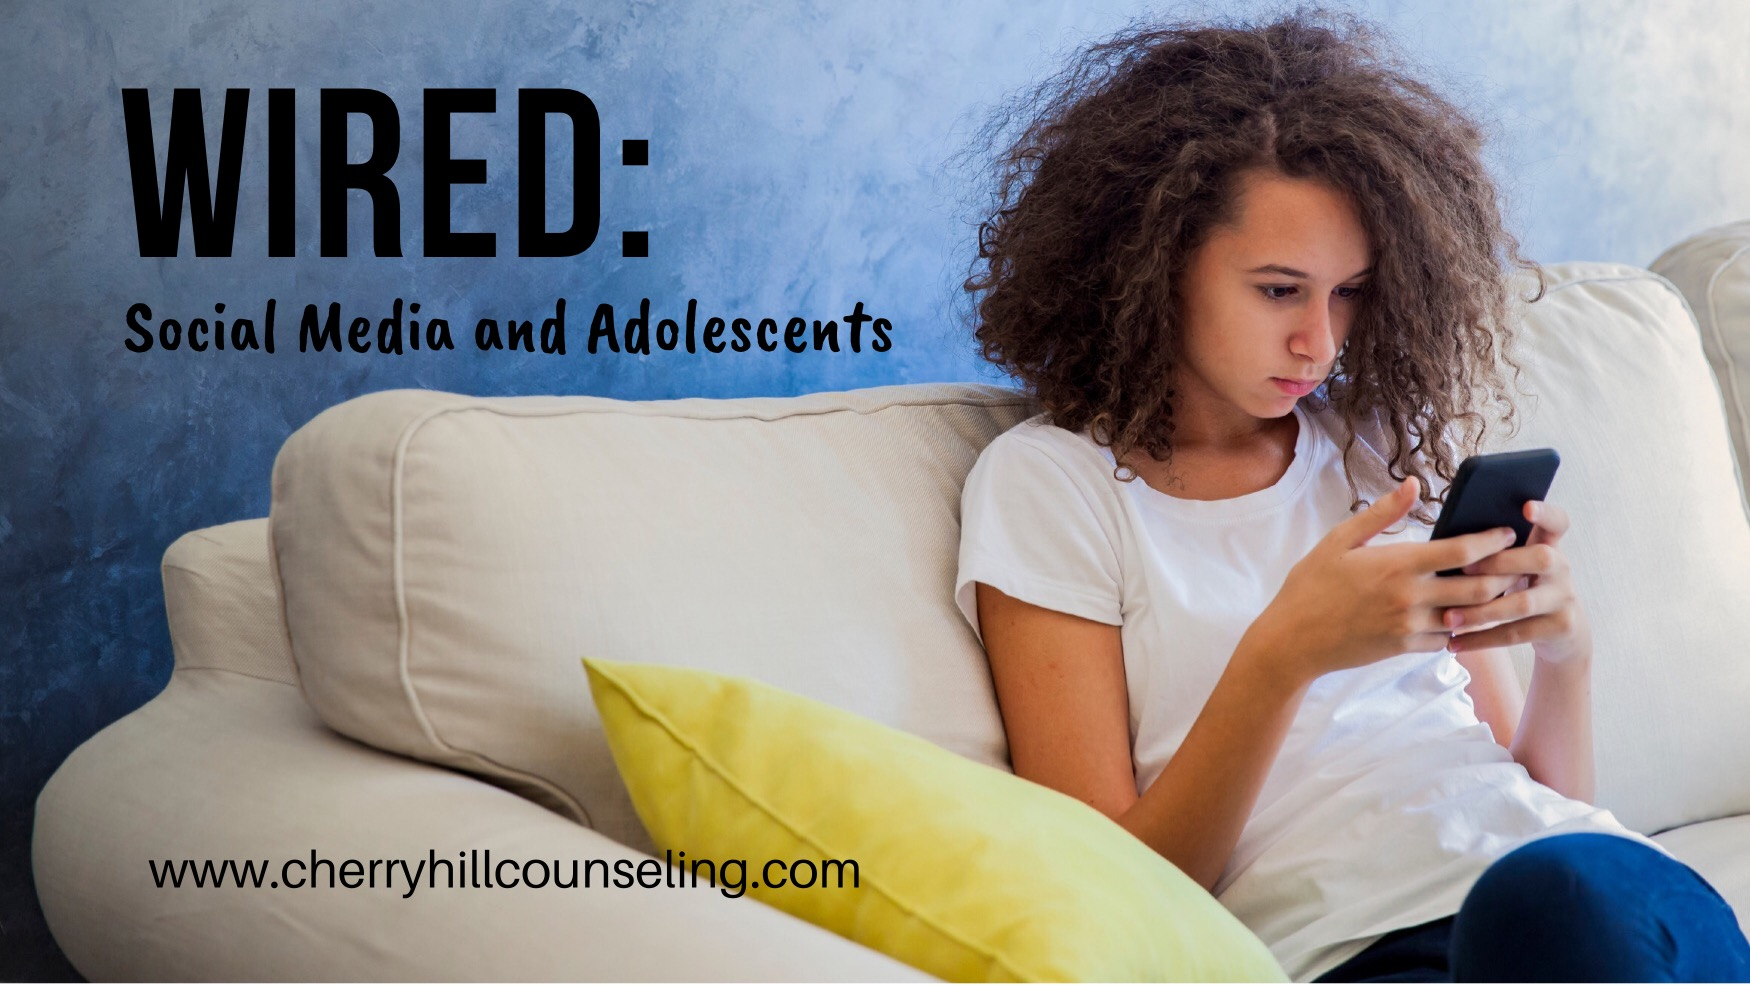 Wired: Social Media and Adolescents